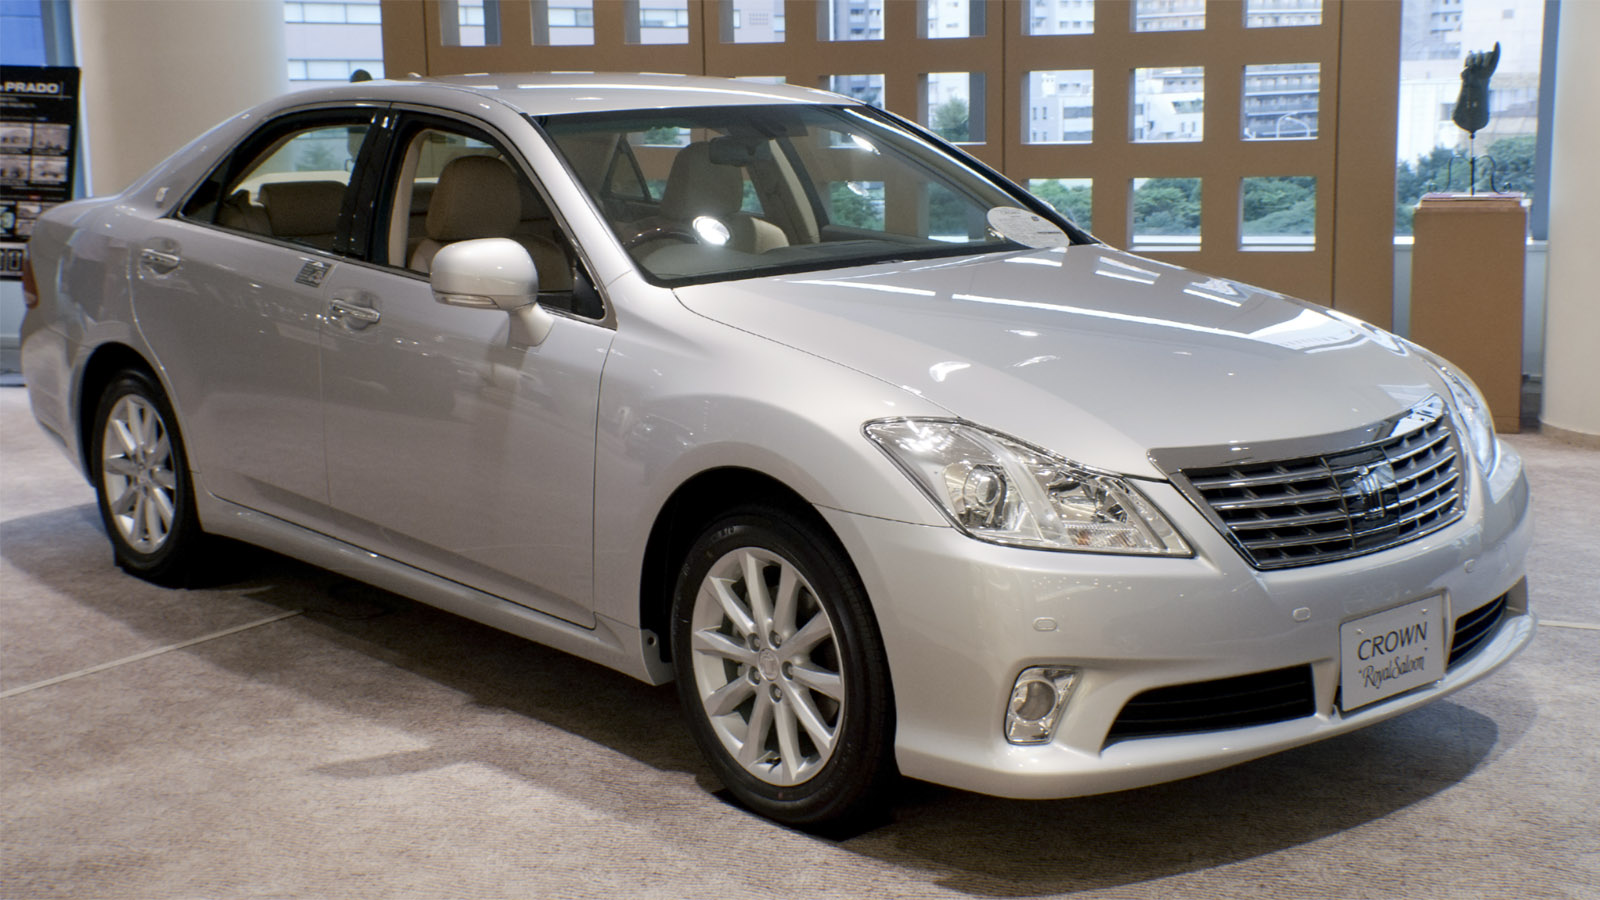 Used TOYOTA CROWN 2010 for sale | CAR FROM JAPAN